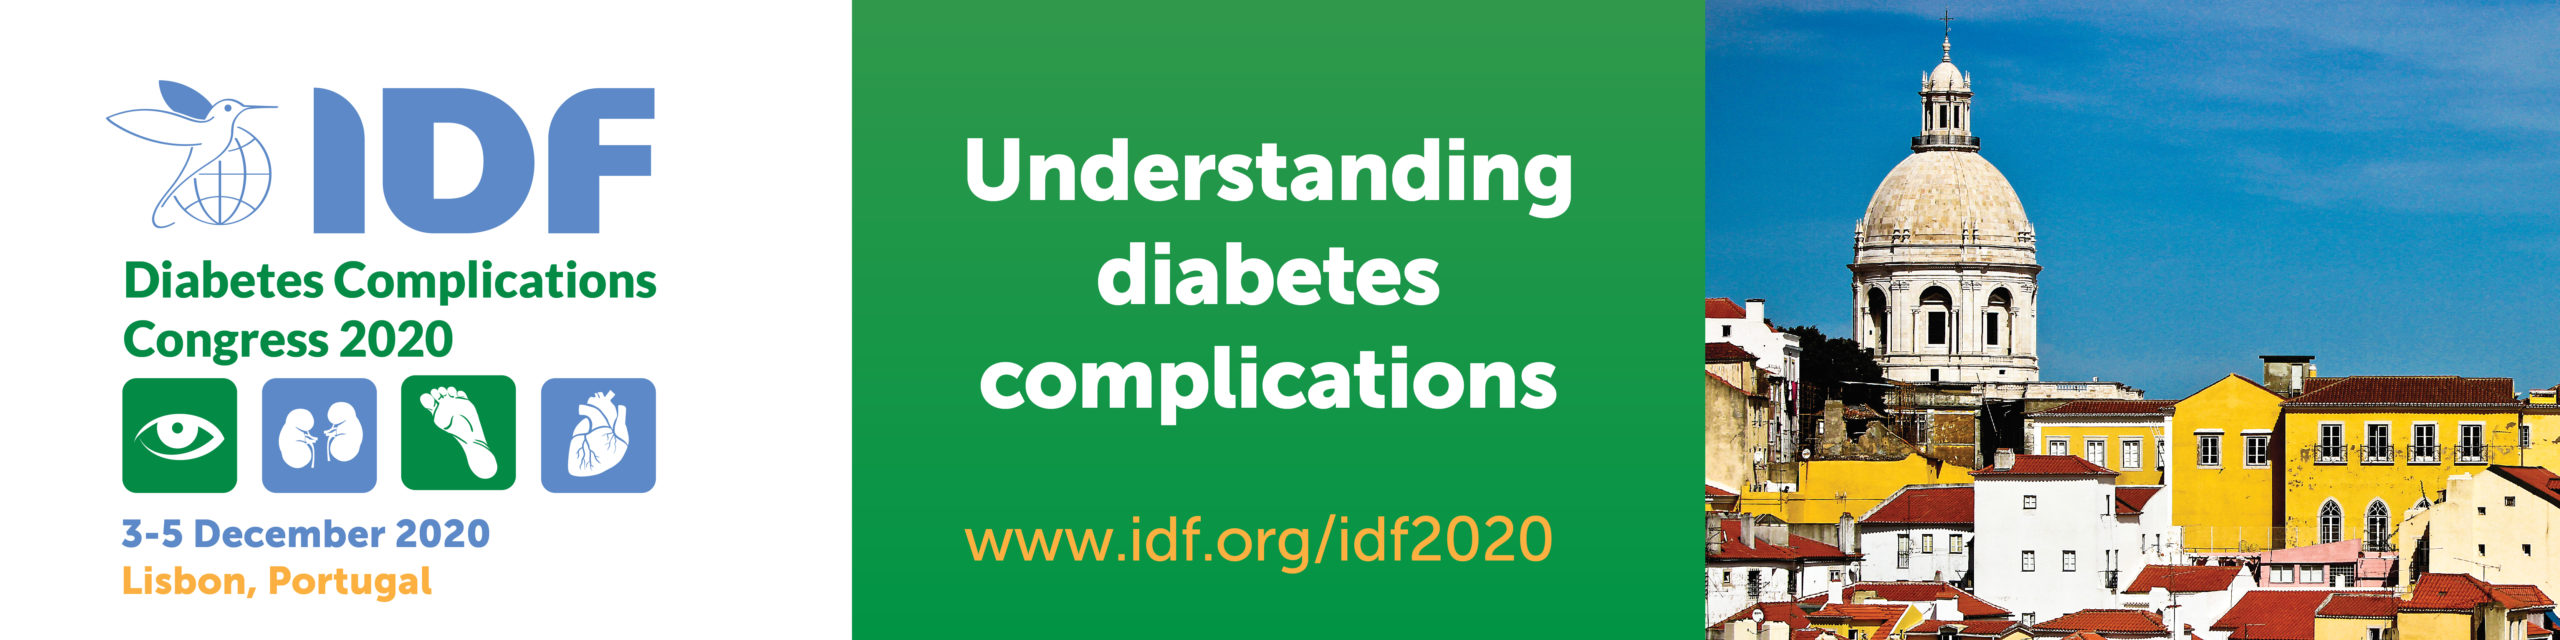 IDF Diabetes Complications Congress 2020 Lisbon brief